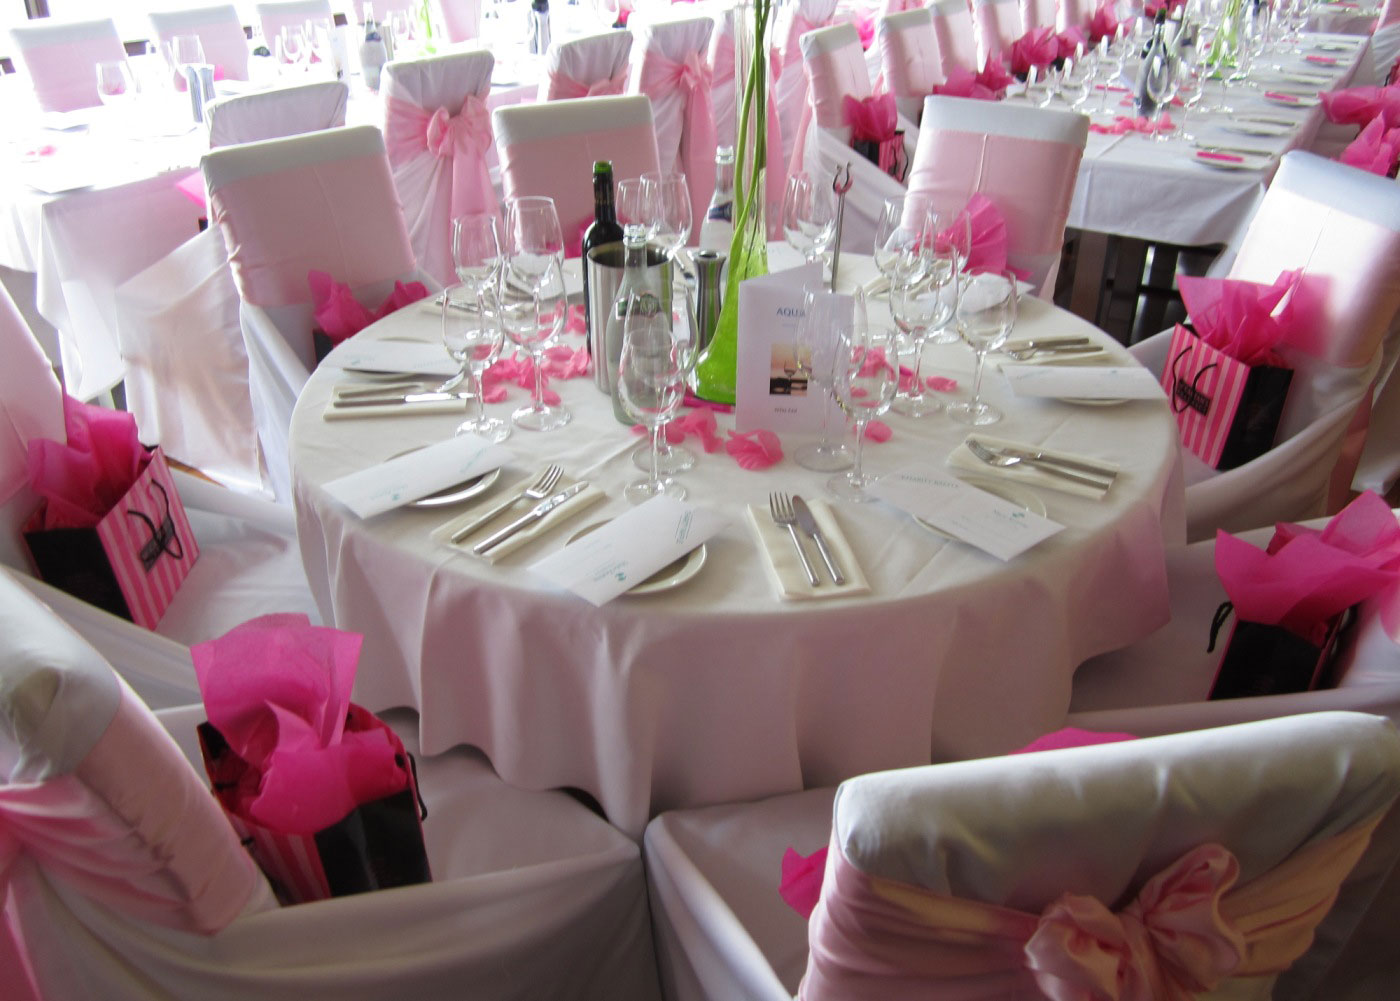 Table layout is dictated by the number of guests expected - capacity of 100 seated